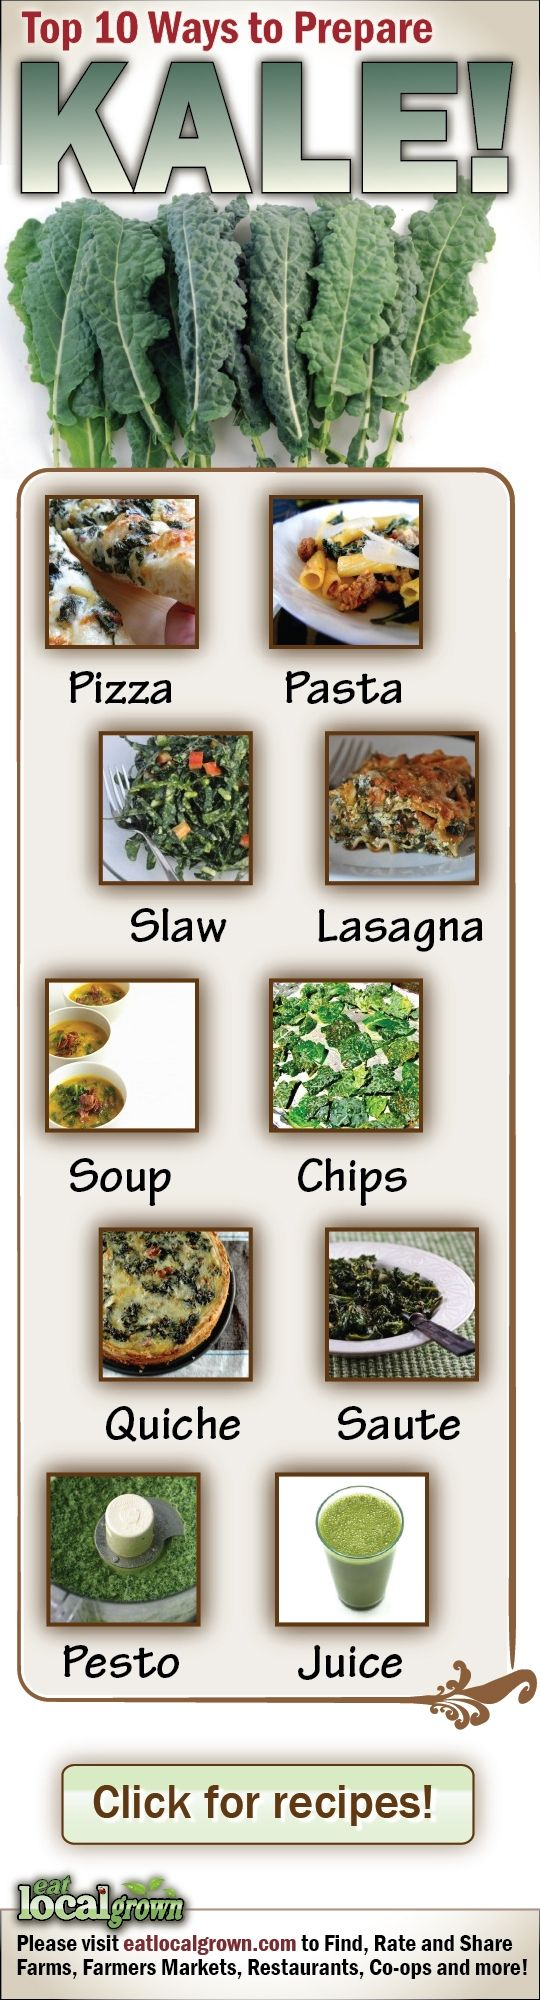 Top 10 Ways to Prepare Kale - the thing is uneatable for me, so let's see if these work!